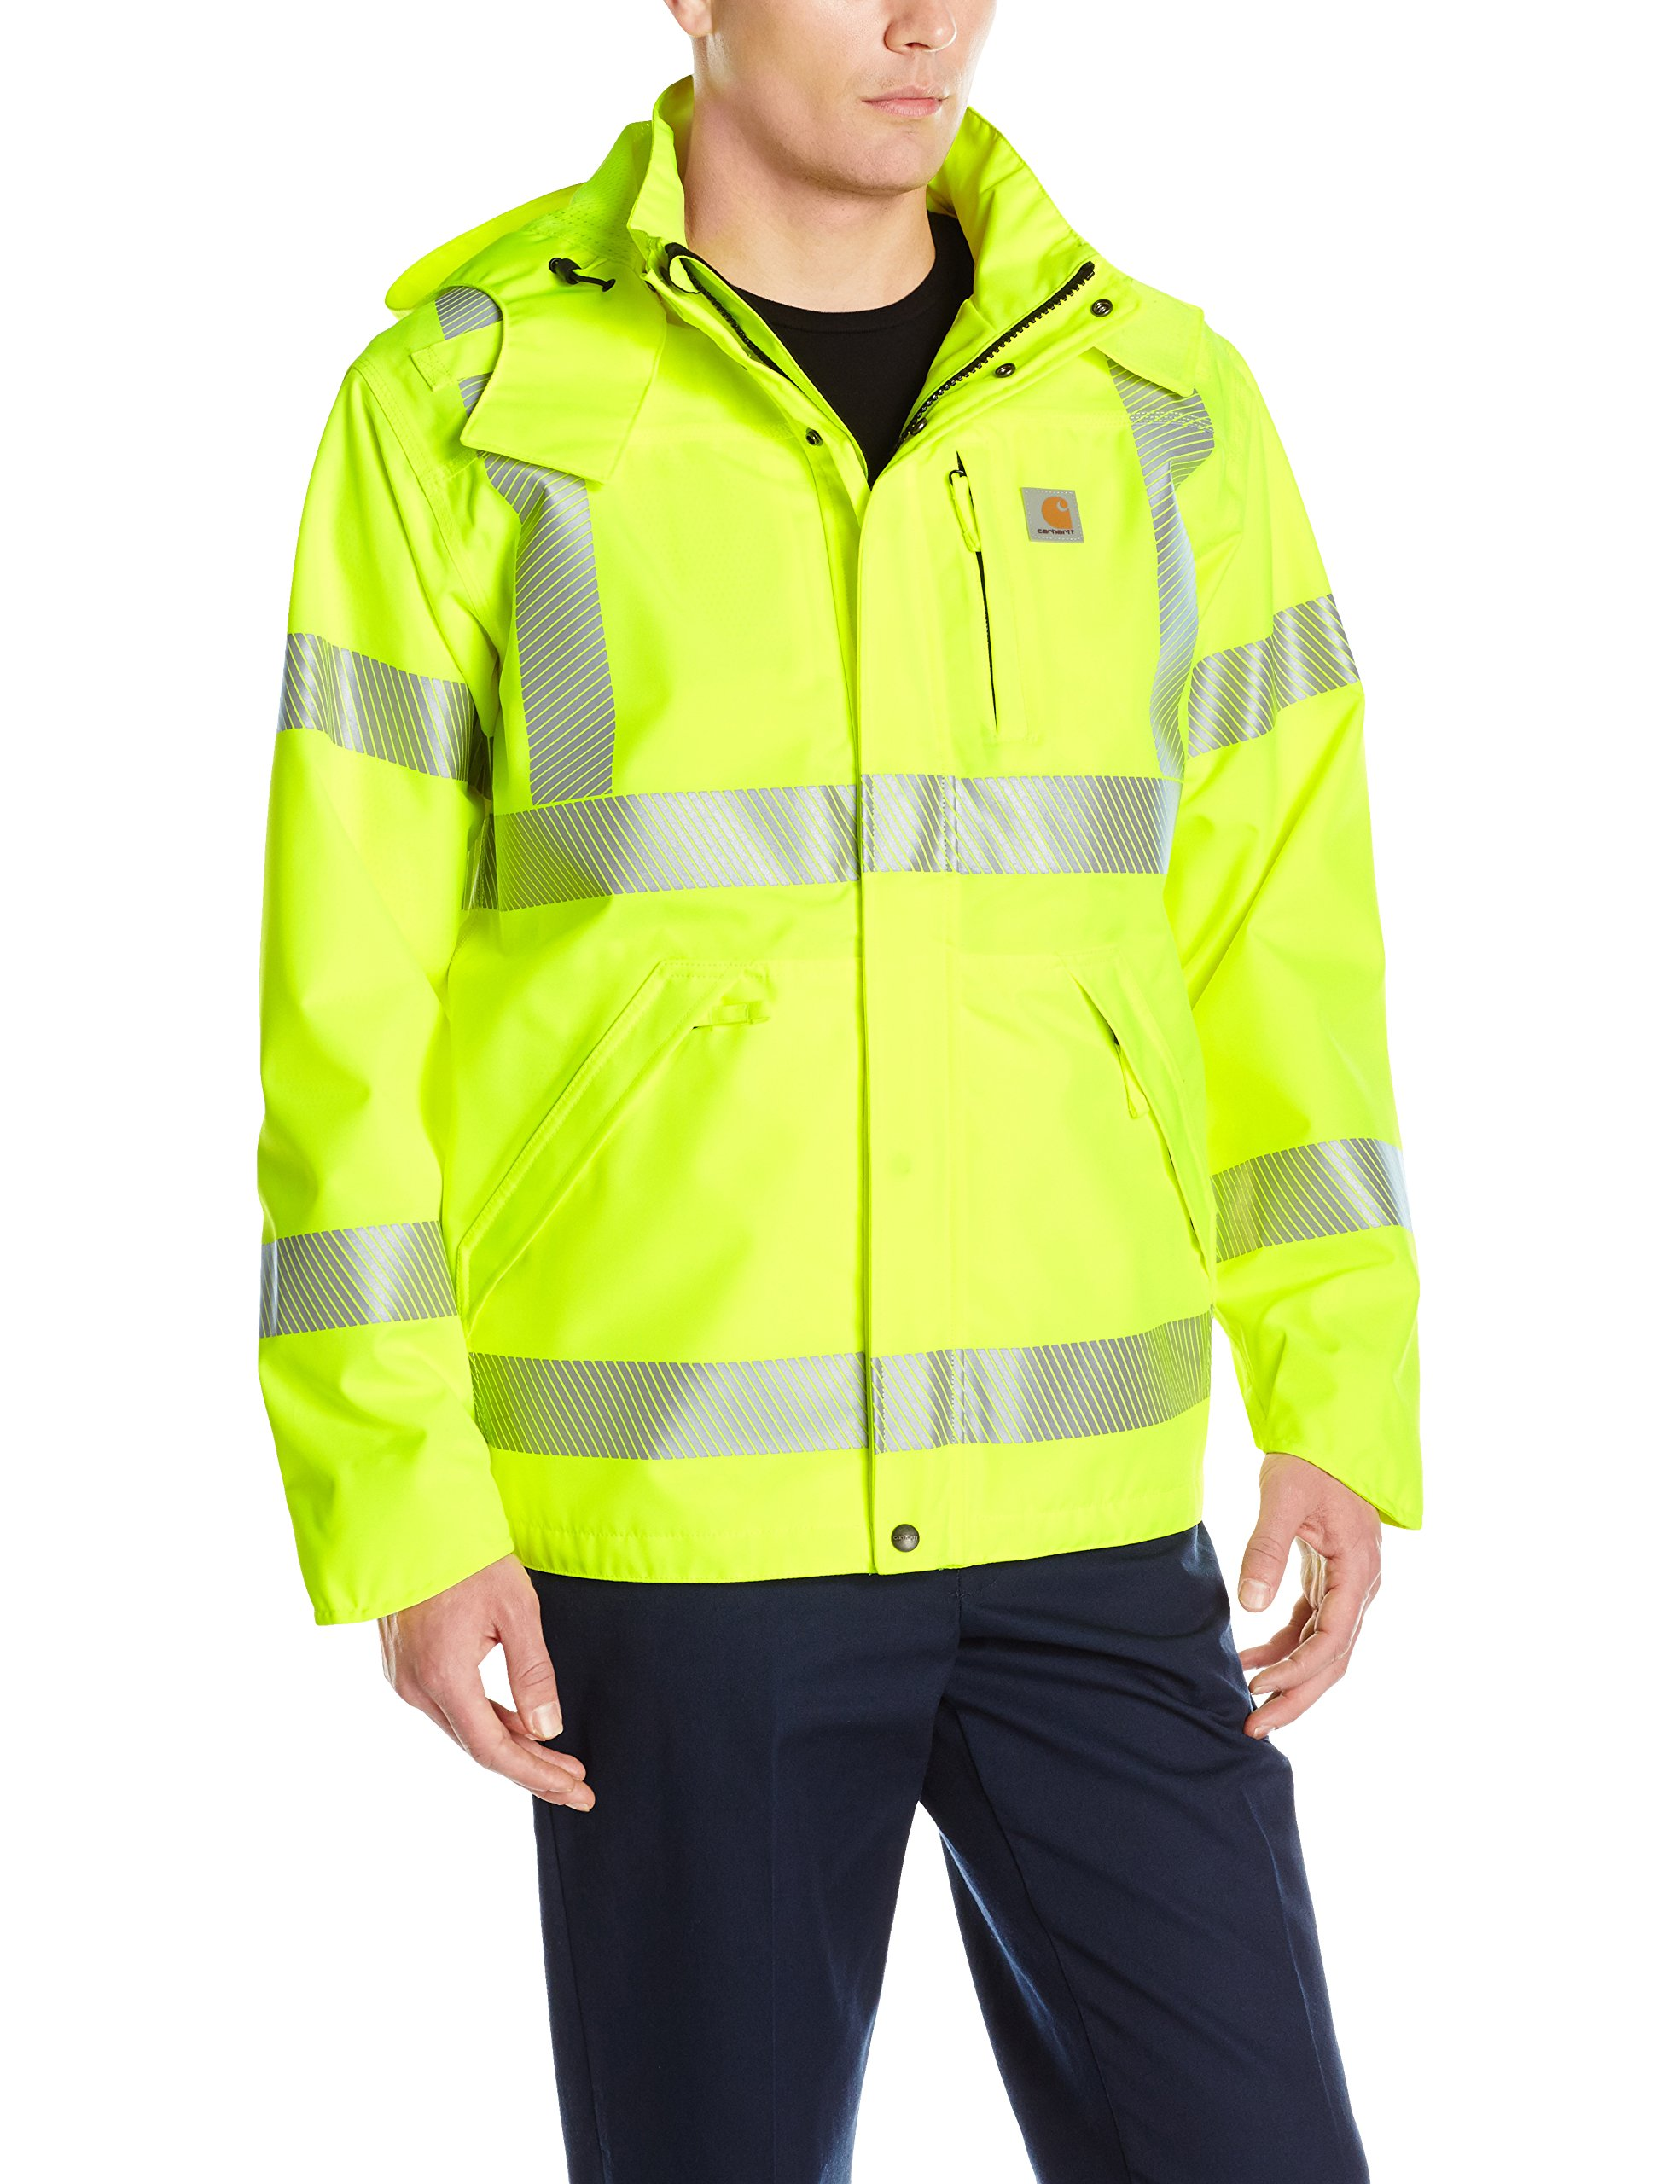 Carhartt Men's High Visibility Class 3 Waterproof Jacket,Brite Lime,Large by Carhartt